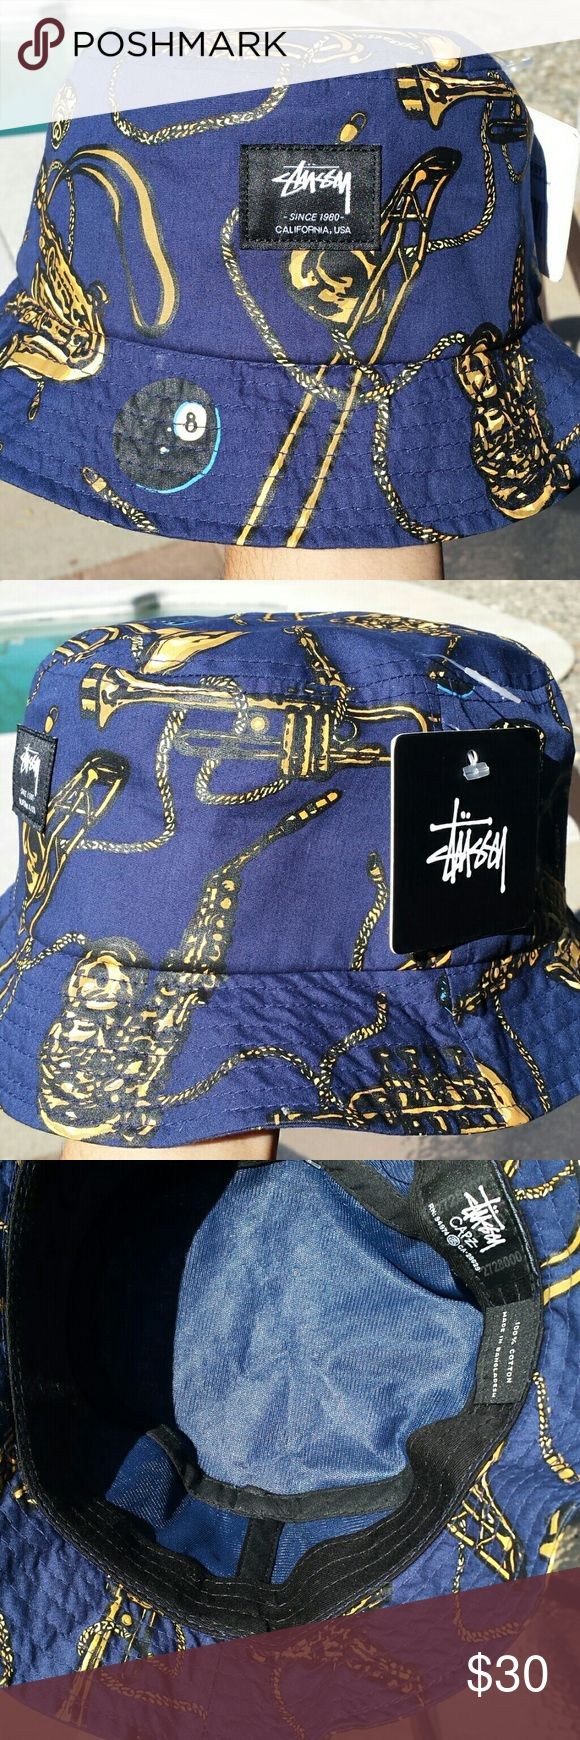 Stussy bucket hat Blue bucket hat with brass graphics Stussy Accessories Hats